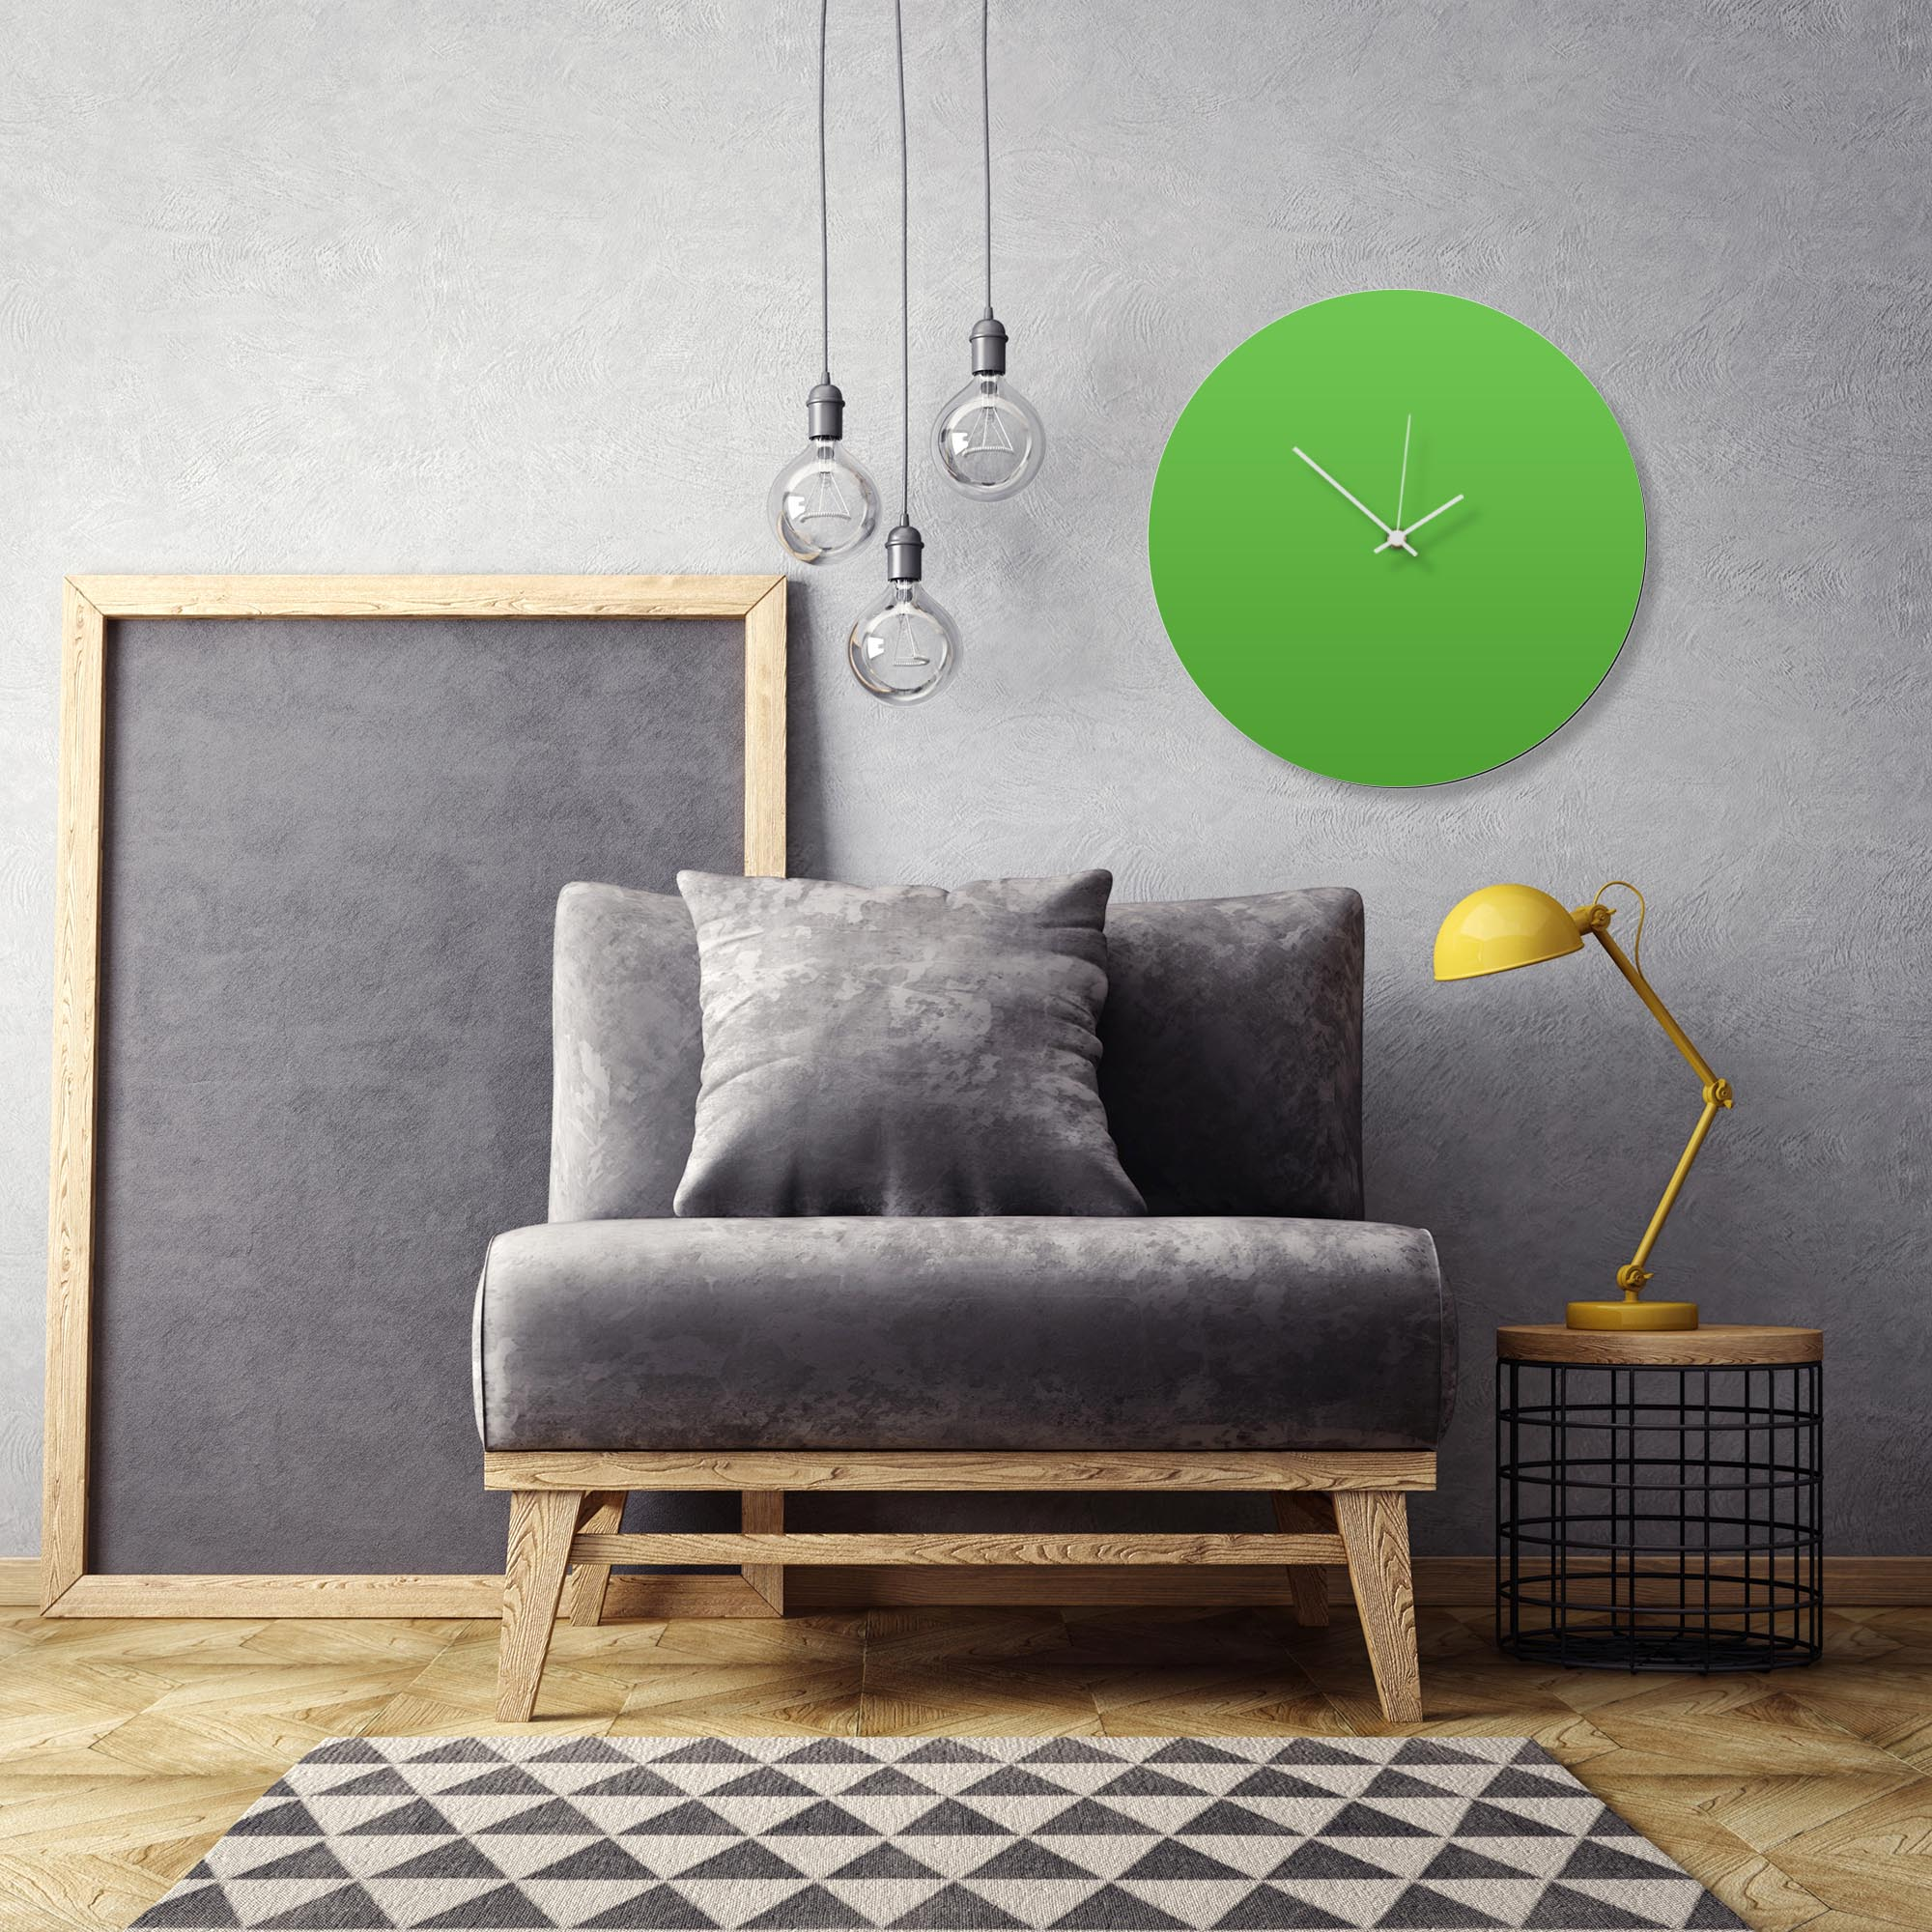 Greenout White Circle Clock Large by Adam Schwoeppe Contemporary Clock on Aluminum Polymetal - Alternate View 1